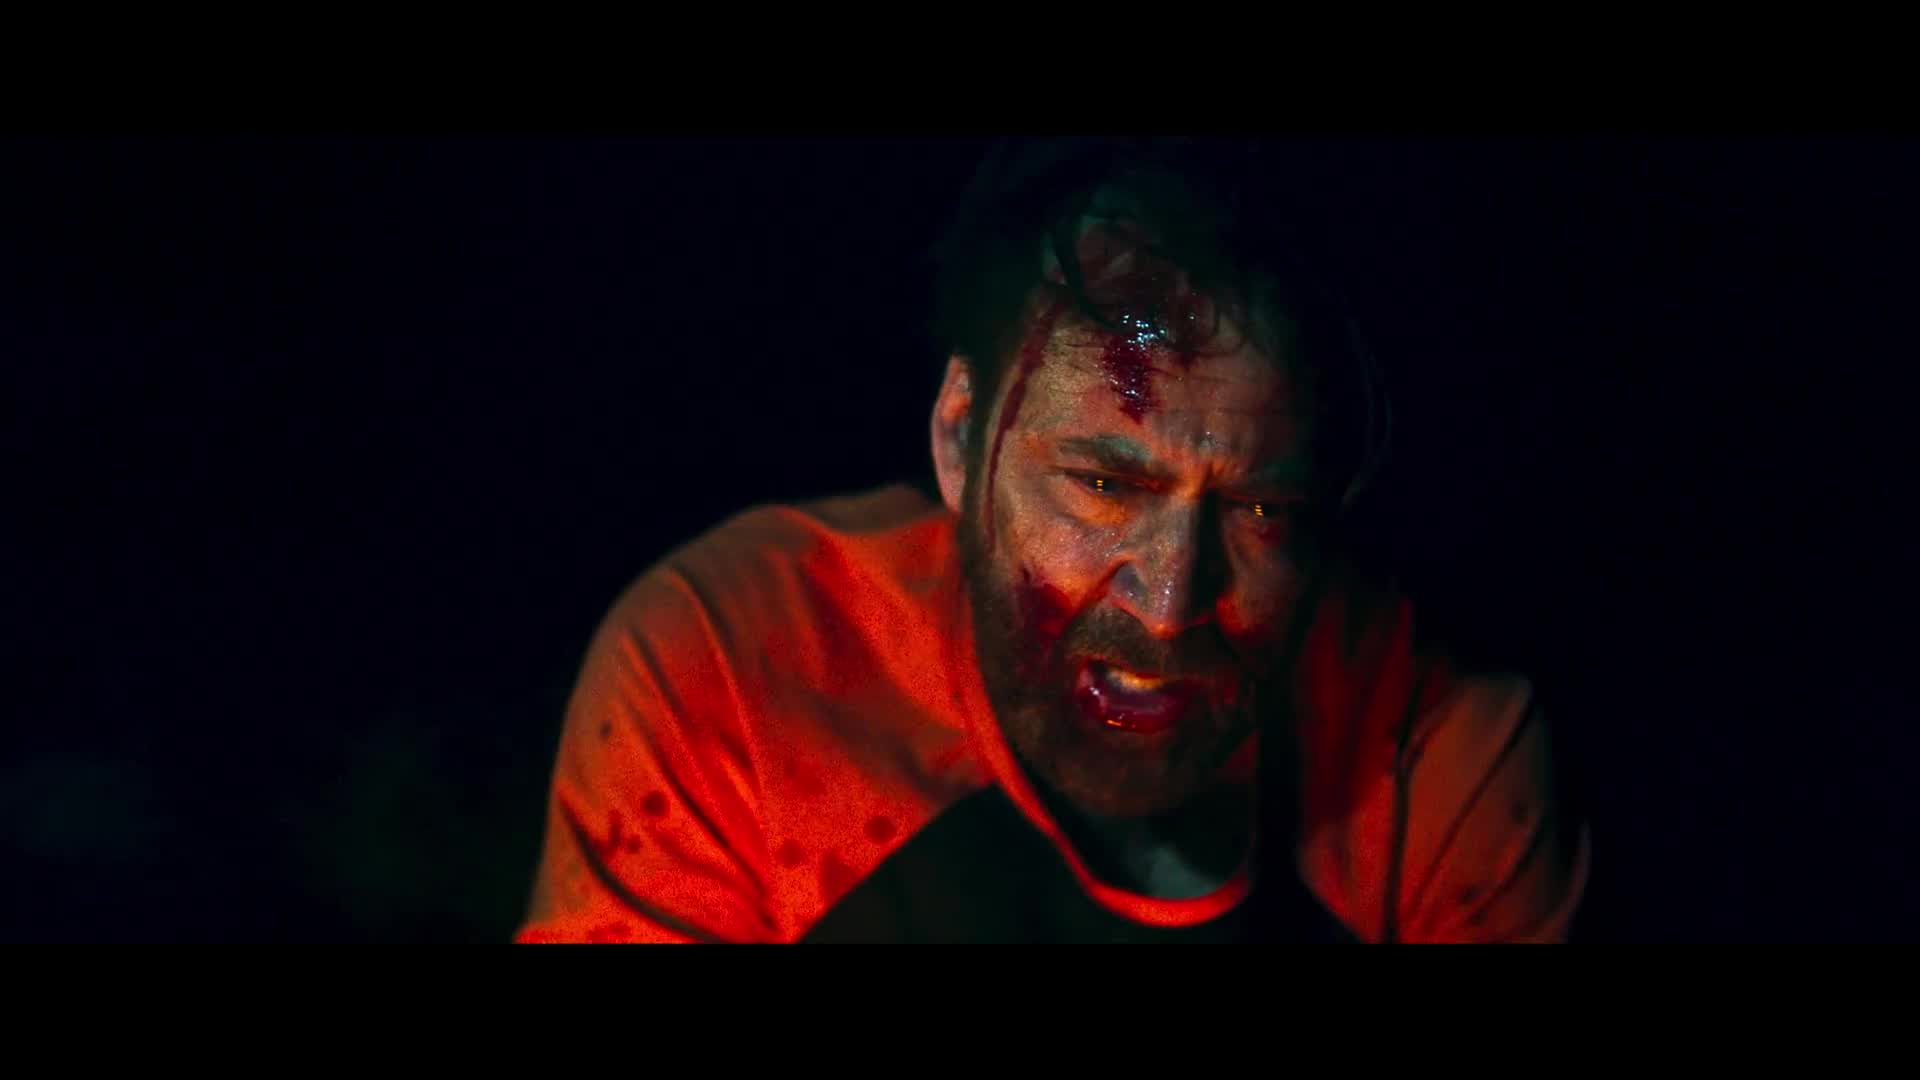 Mandy hd full movie download